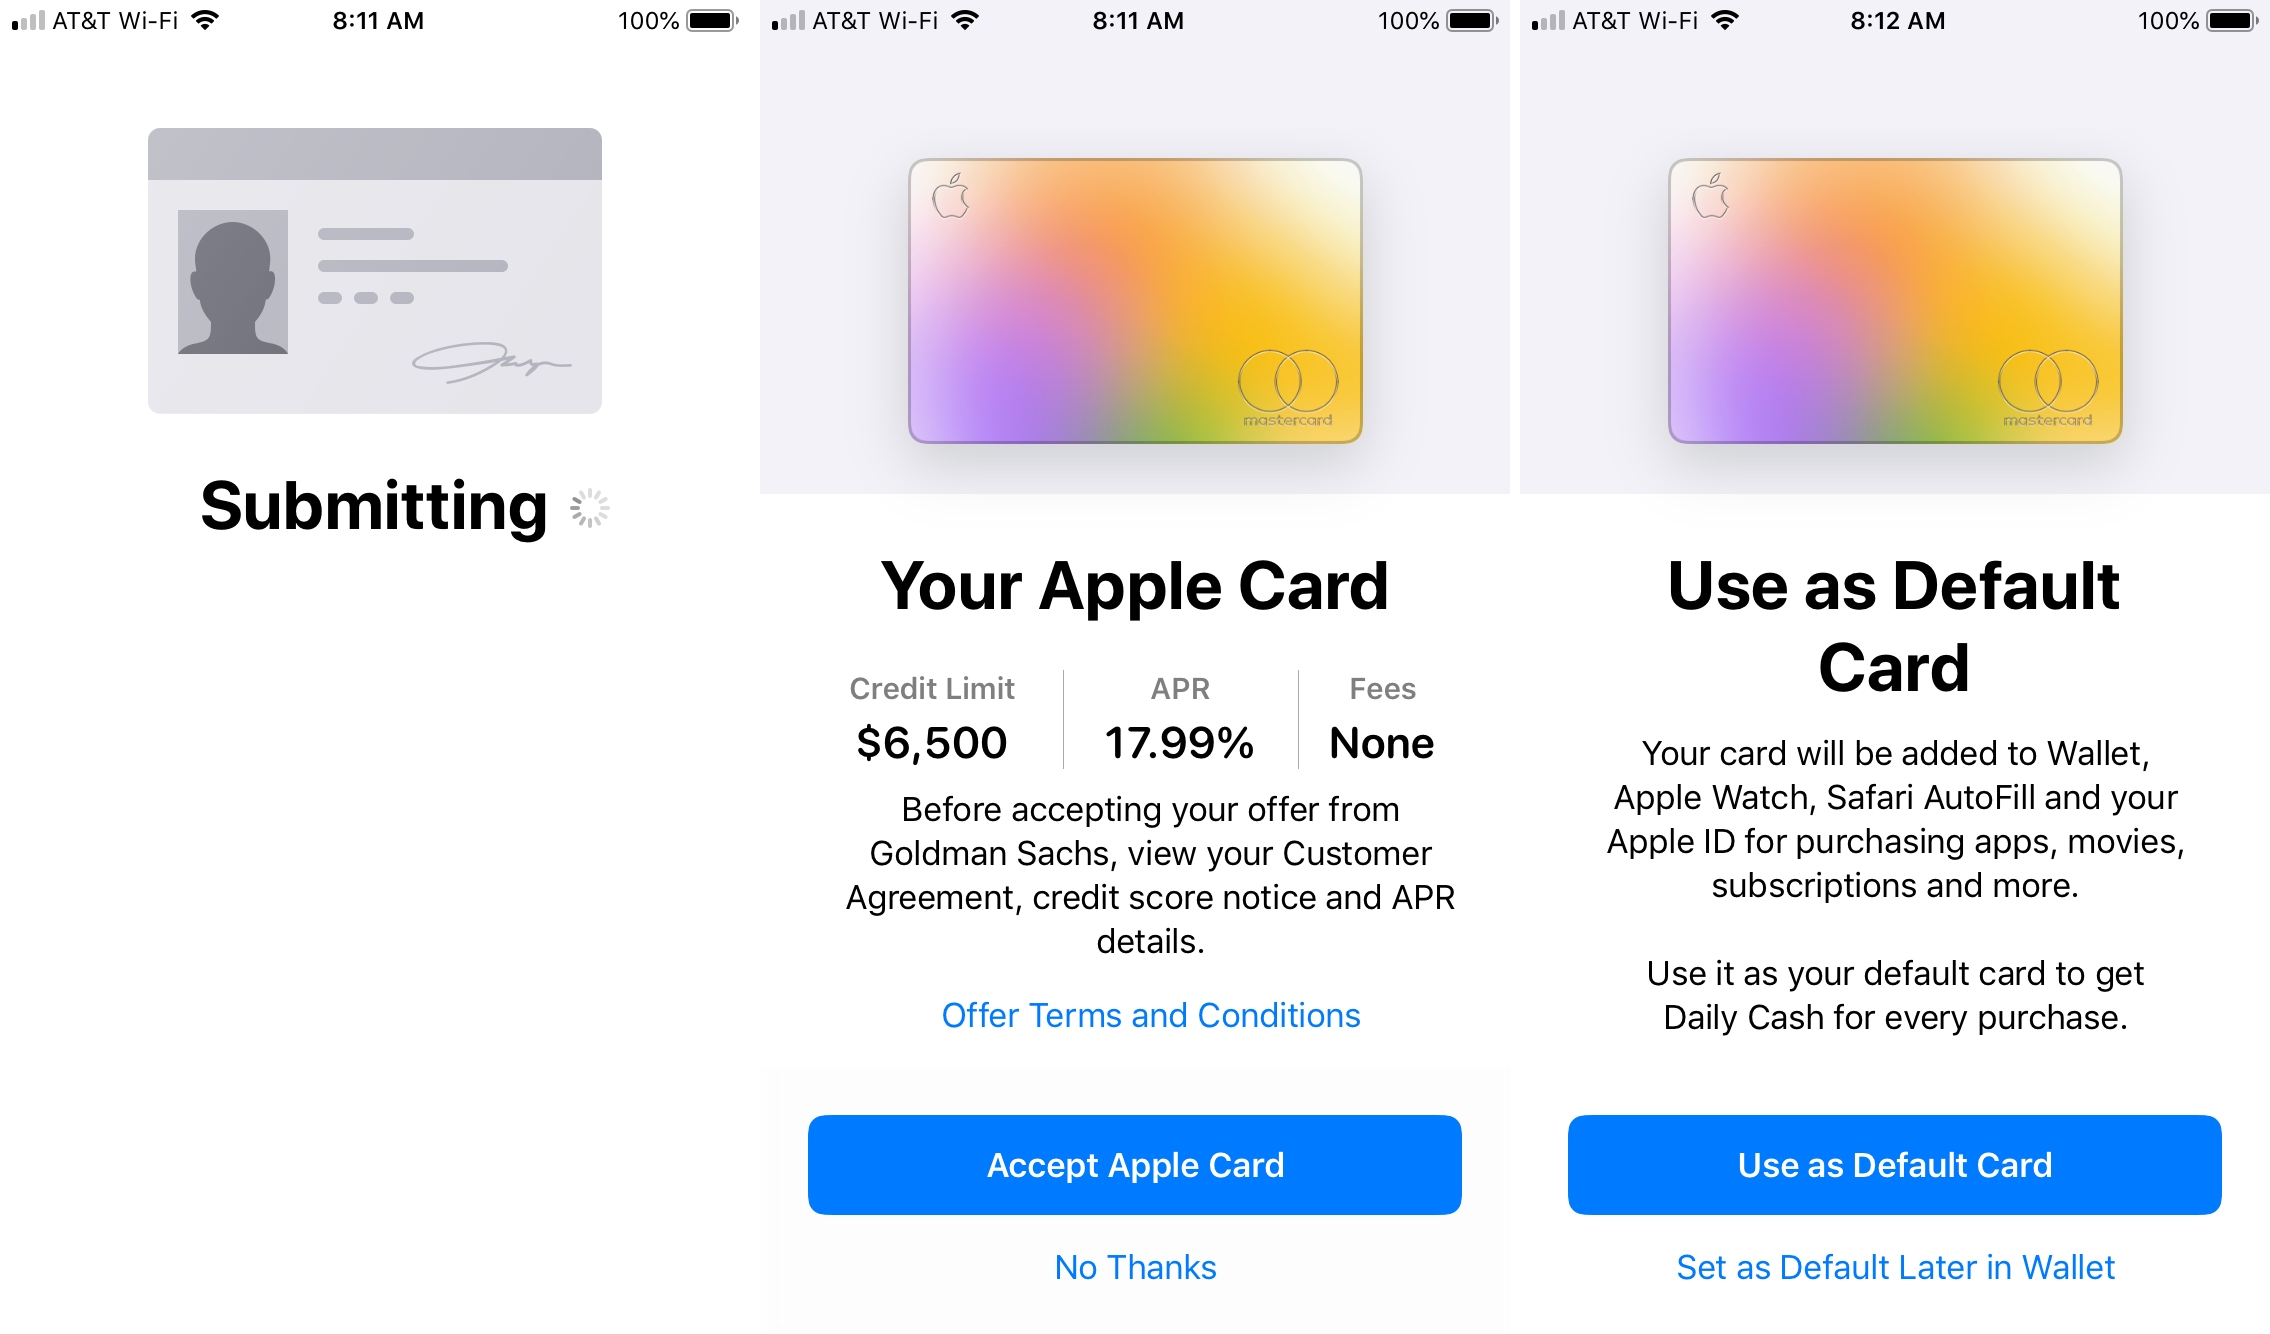 Applicable to Apple Card-approved details